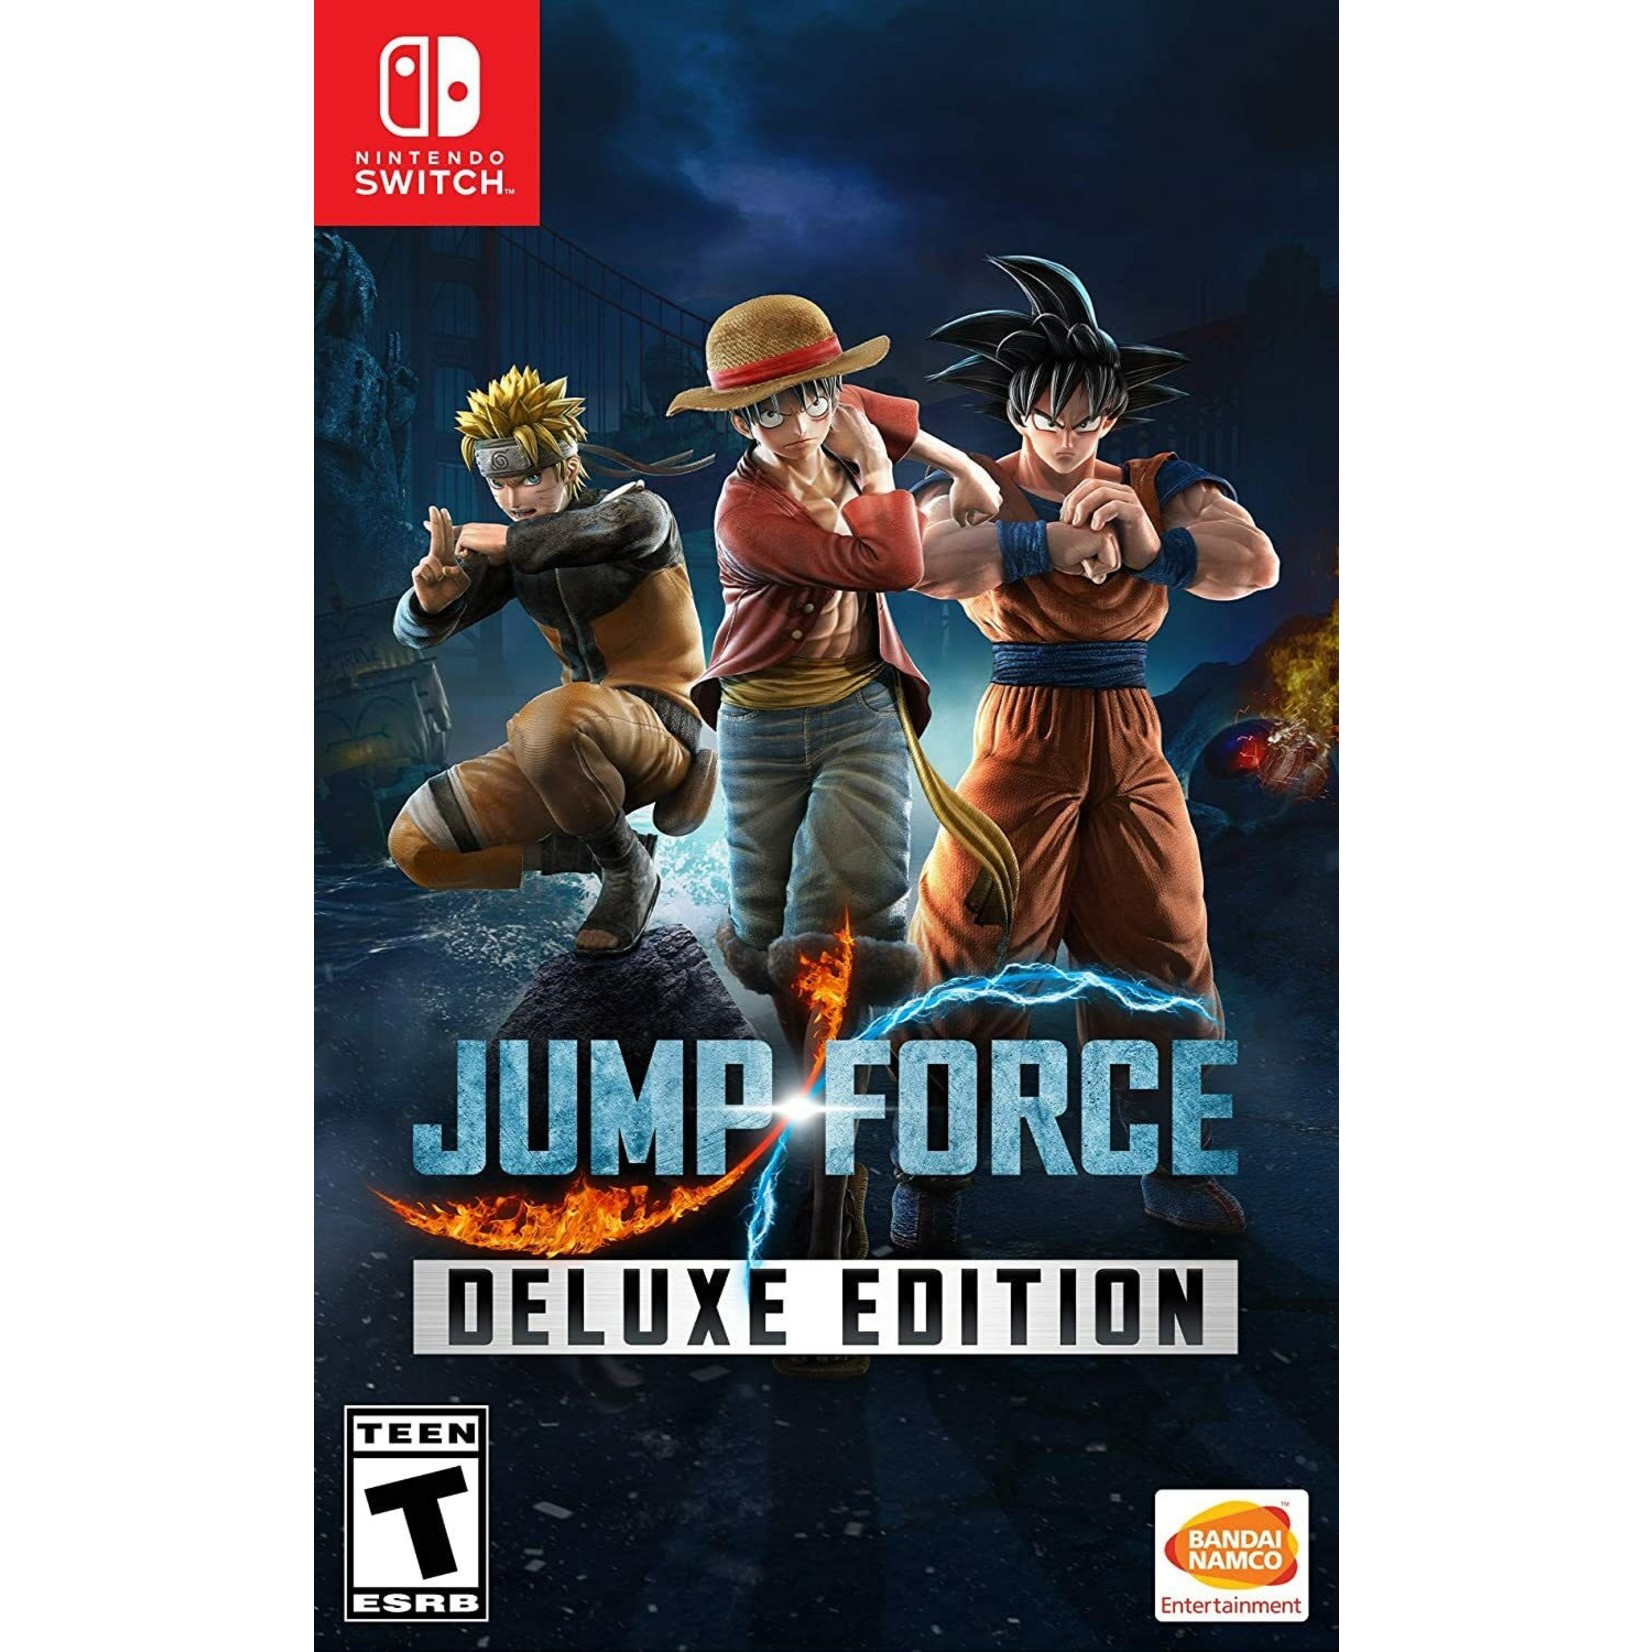 SWITCHU-JUMP FORCE DELUXE EDITION